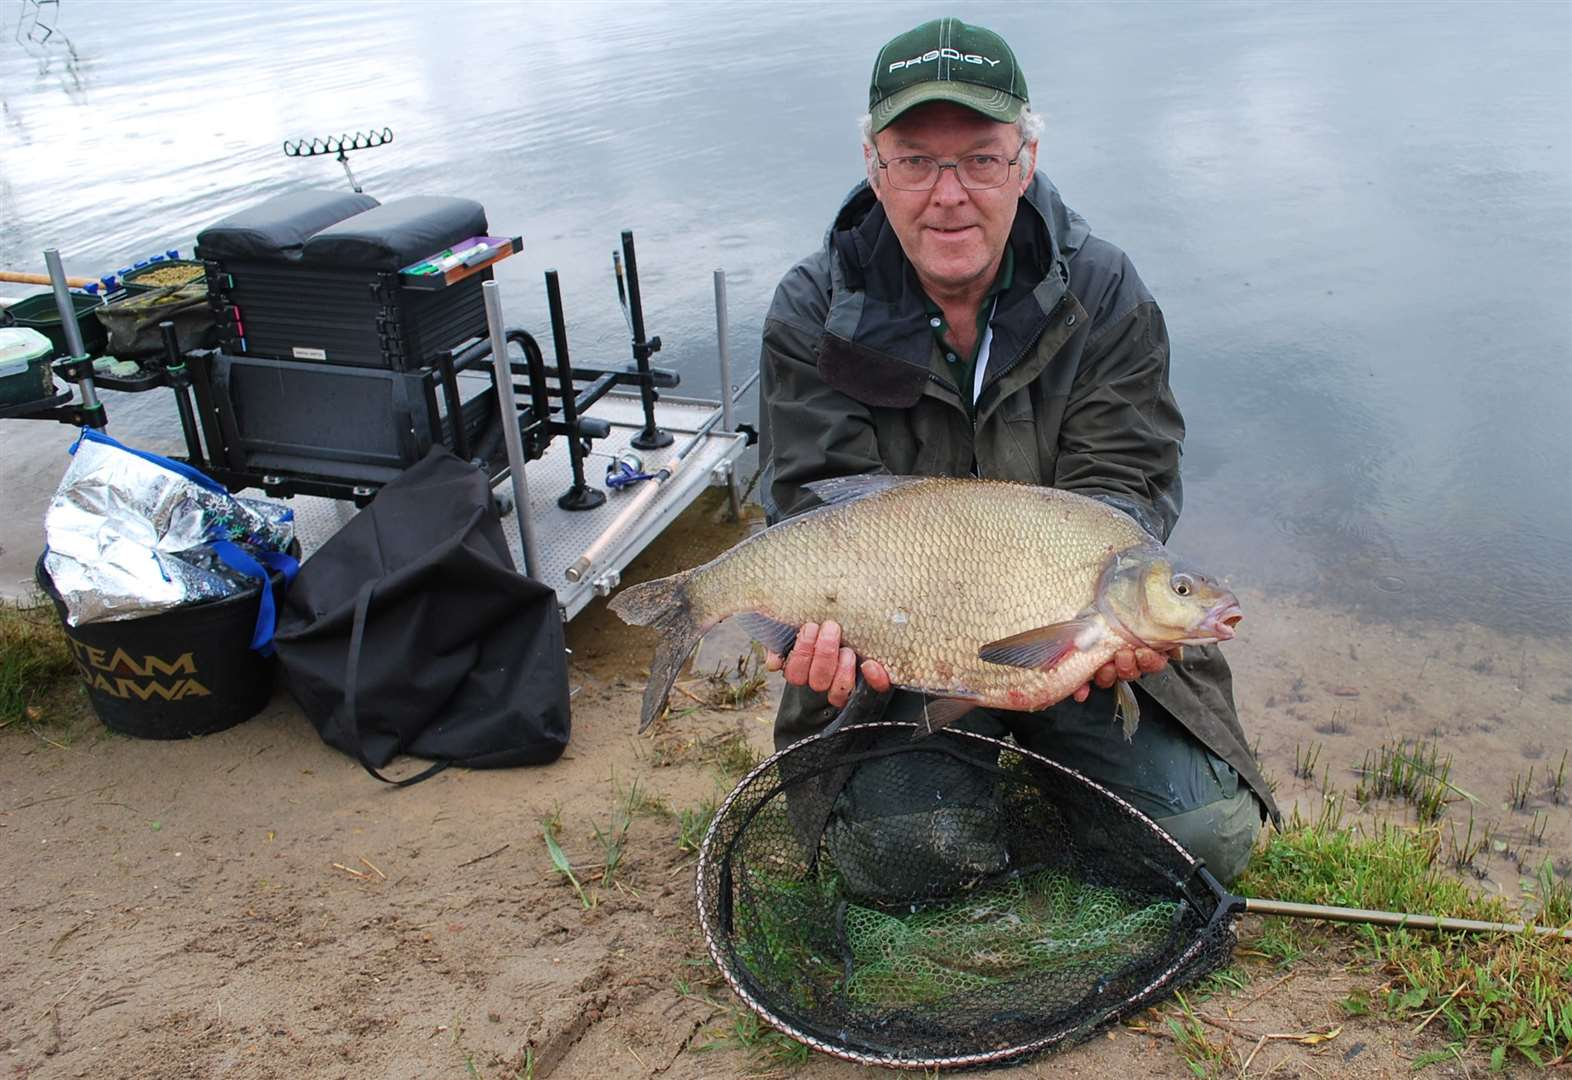 Coster outlines the basic trinity of coarse anglers and their habitats